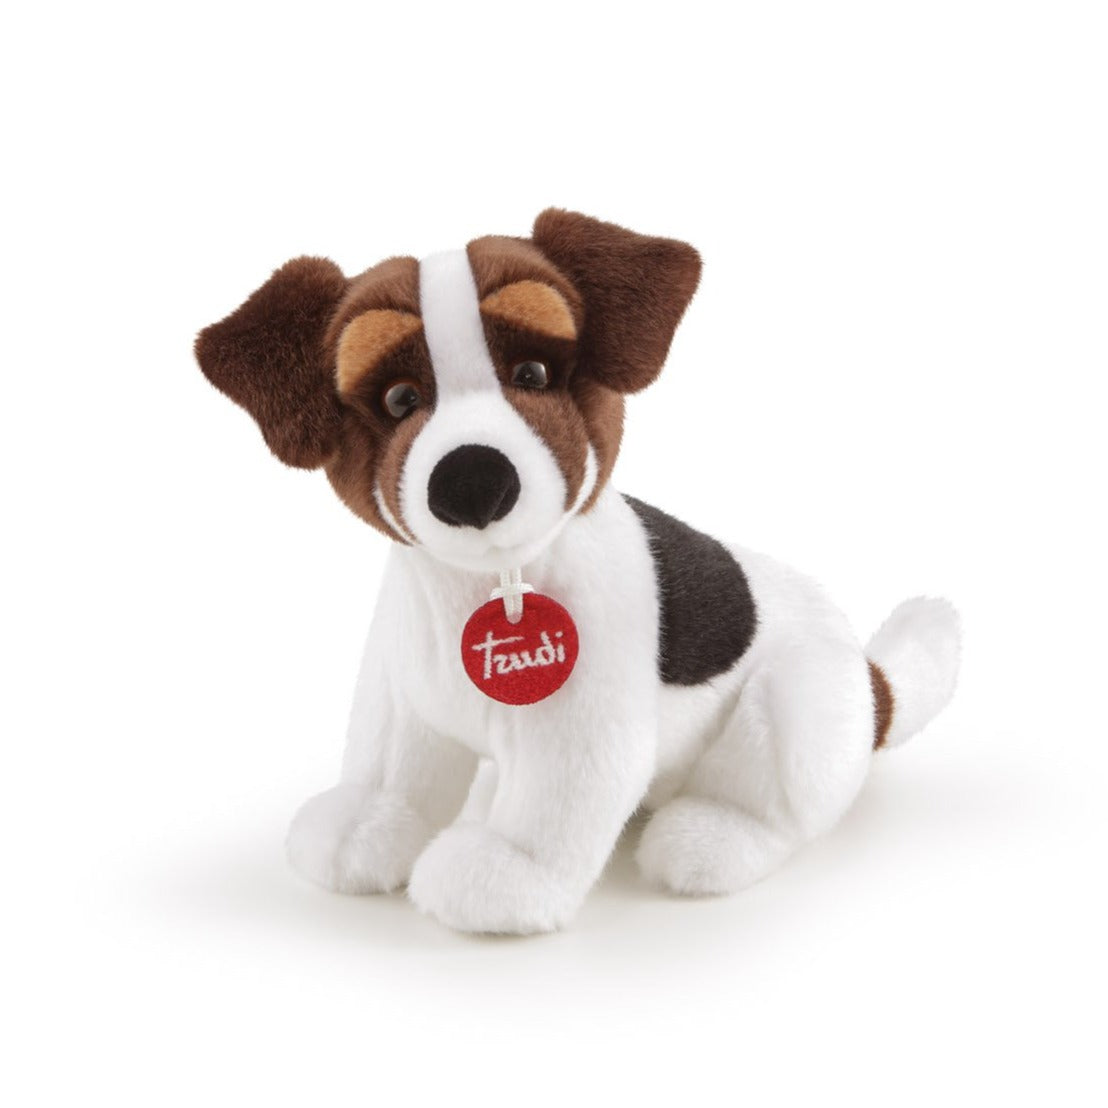 Classic Dog Jack Russell - S 24cm